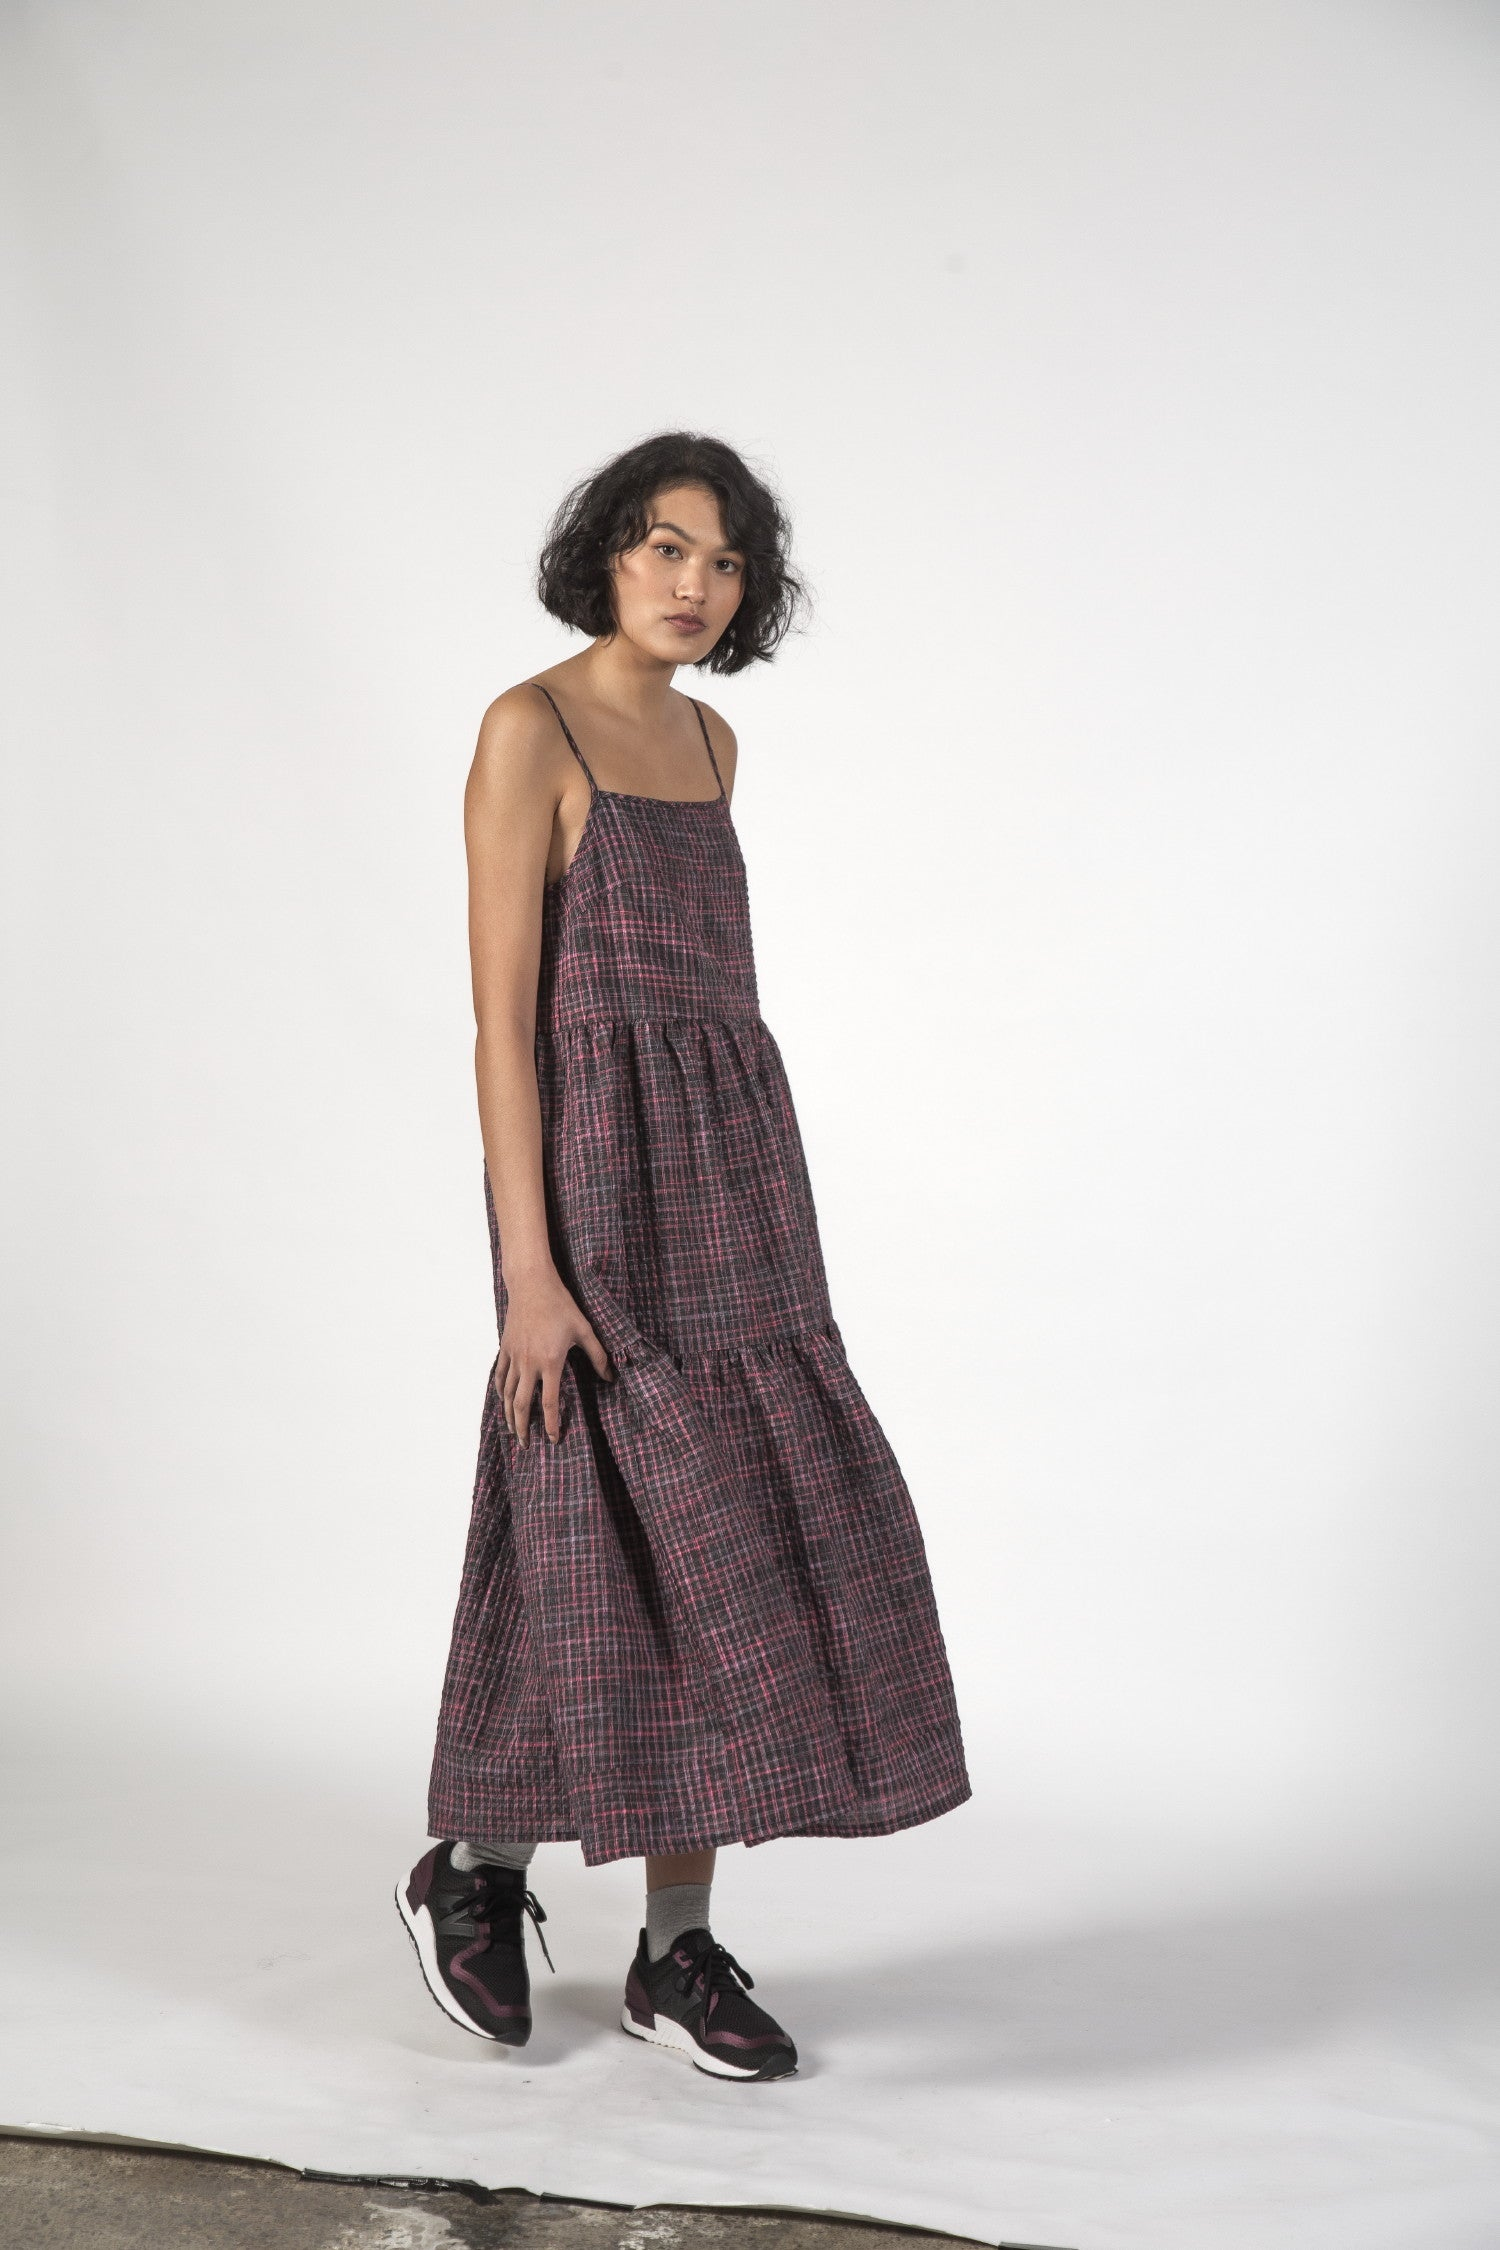 ZIGGY DRESS - Charcoal Check